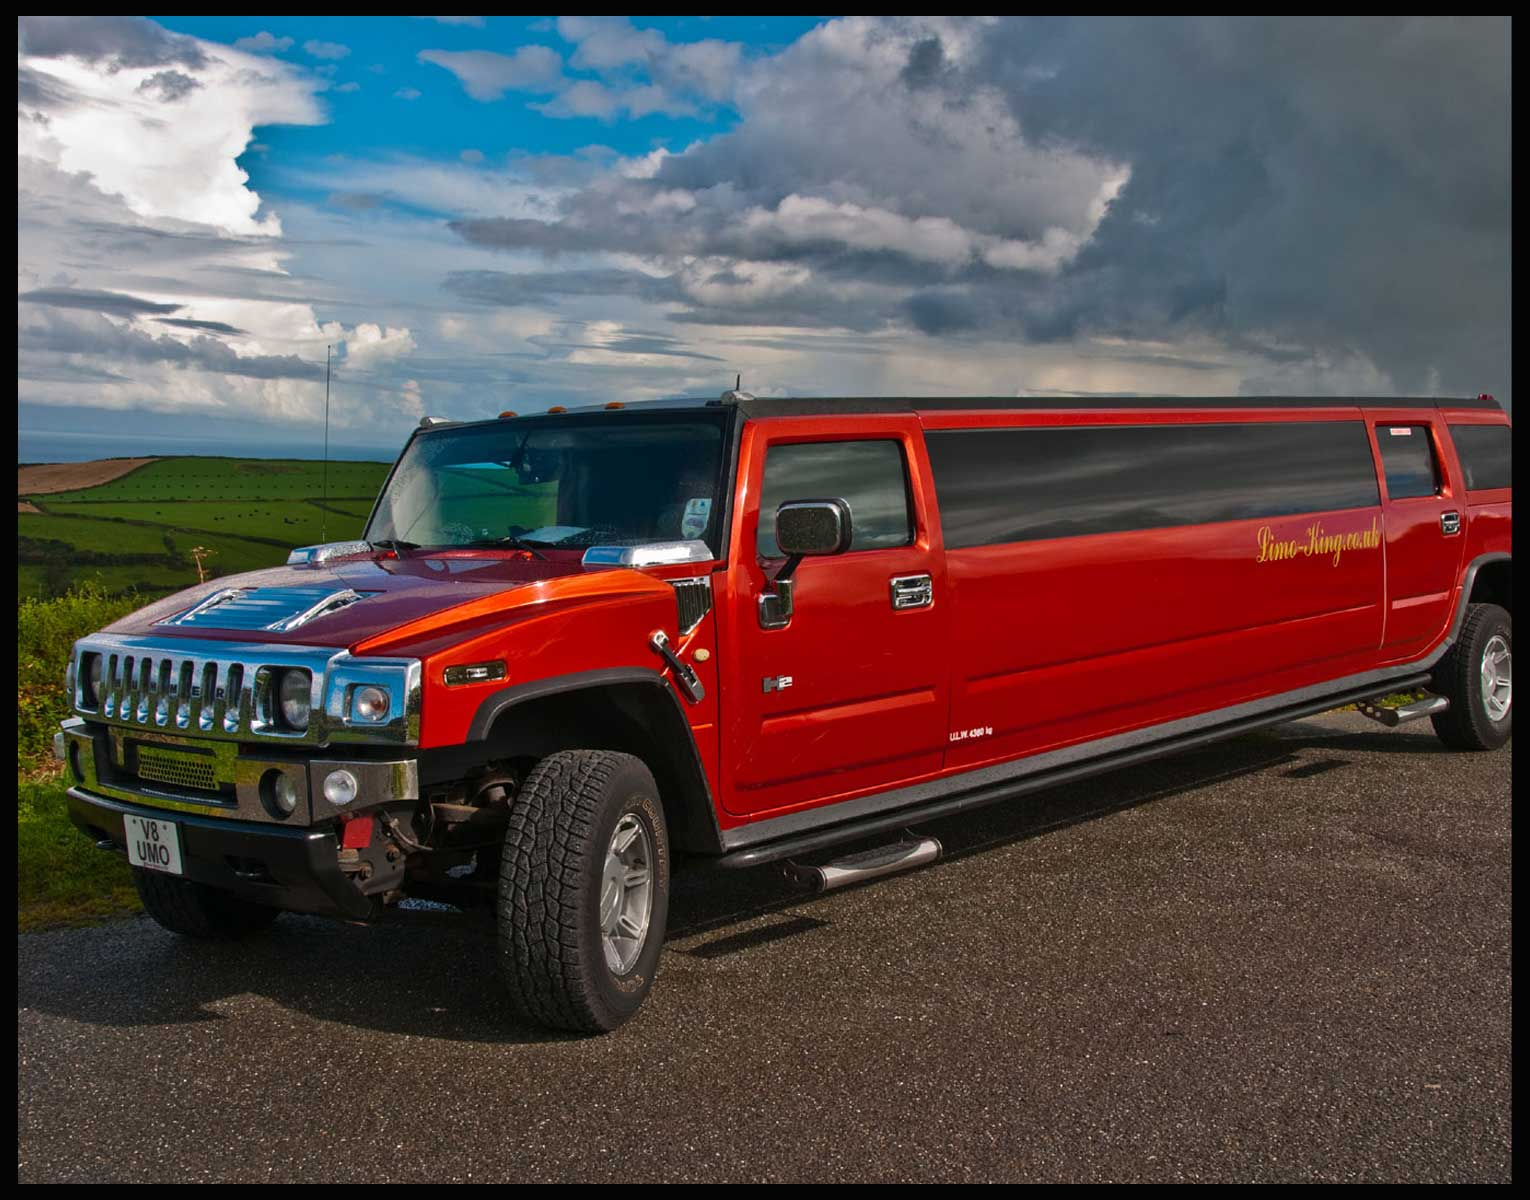 click to book our hummer limo